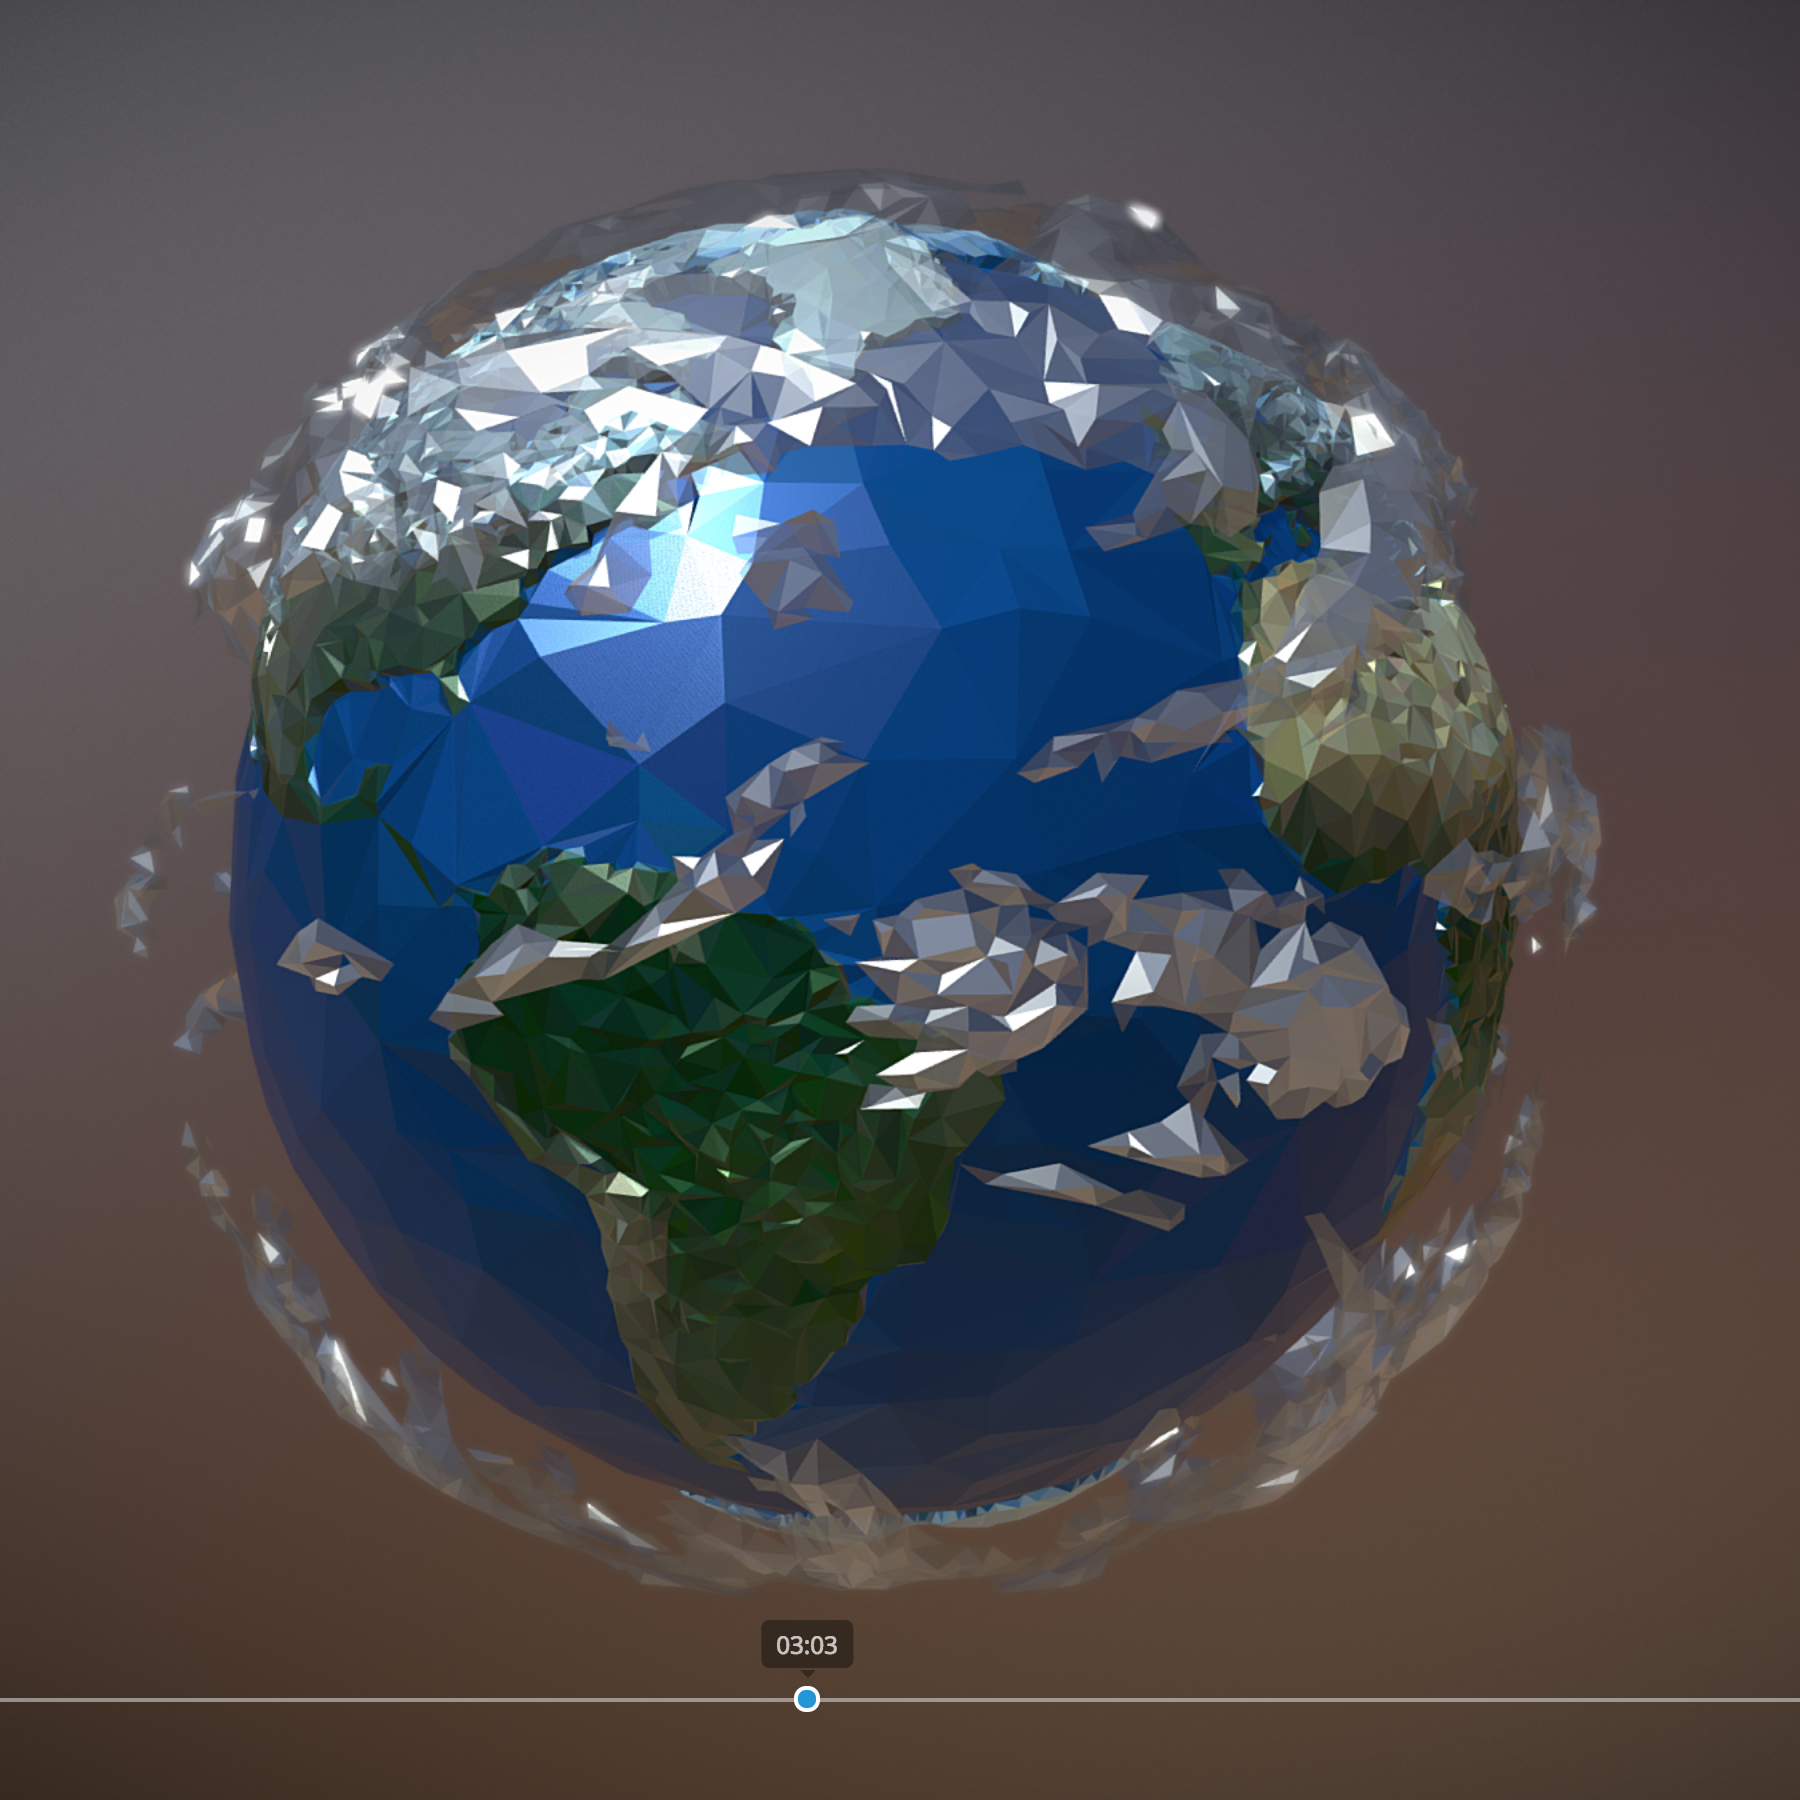 animated planet earth 3d model 3ds max fbx ma mb tga targa icb vda vst pix obj 271049